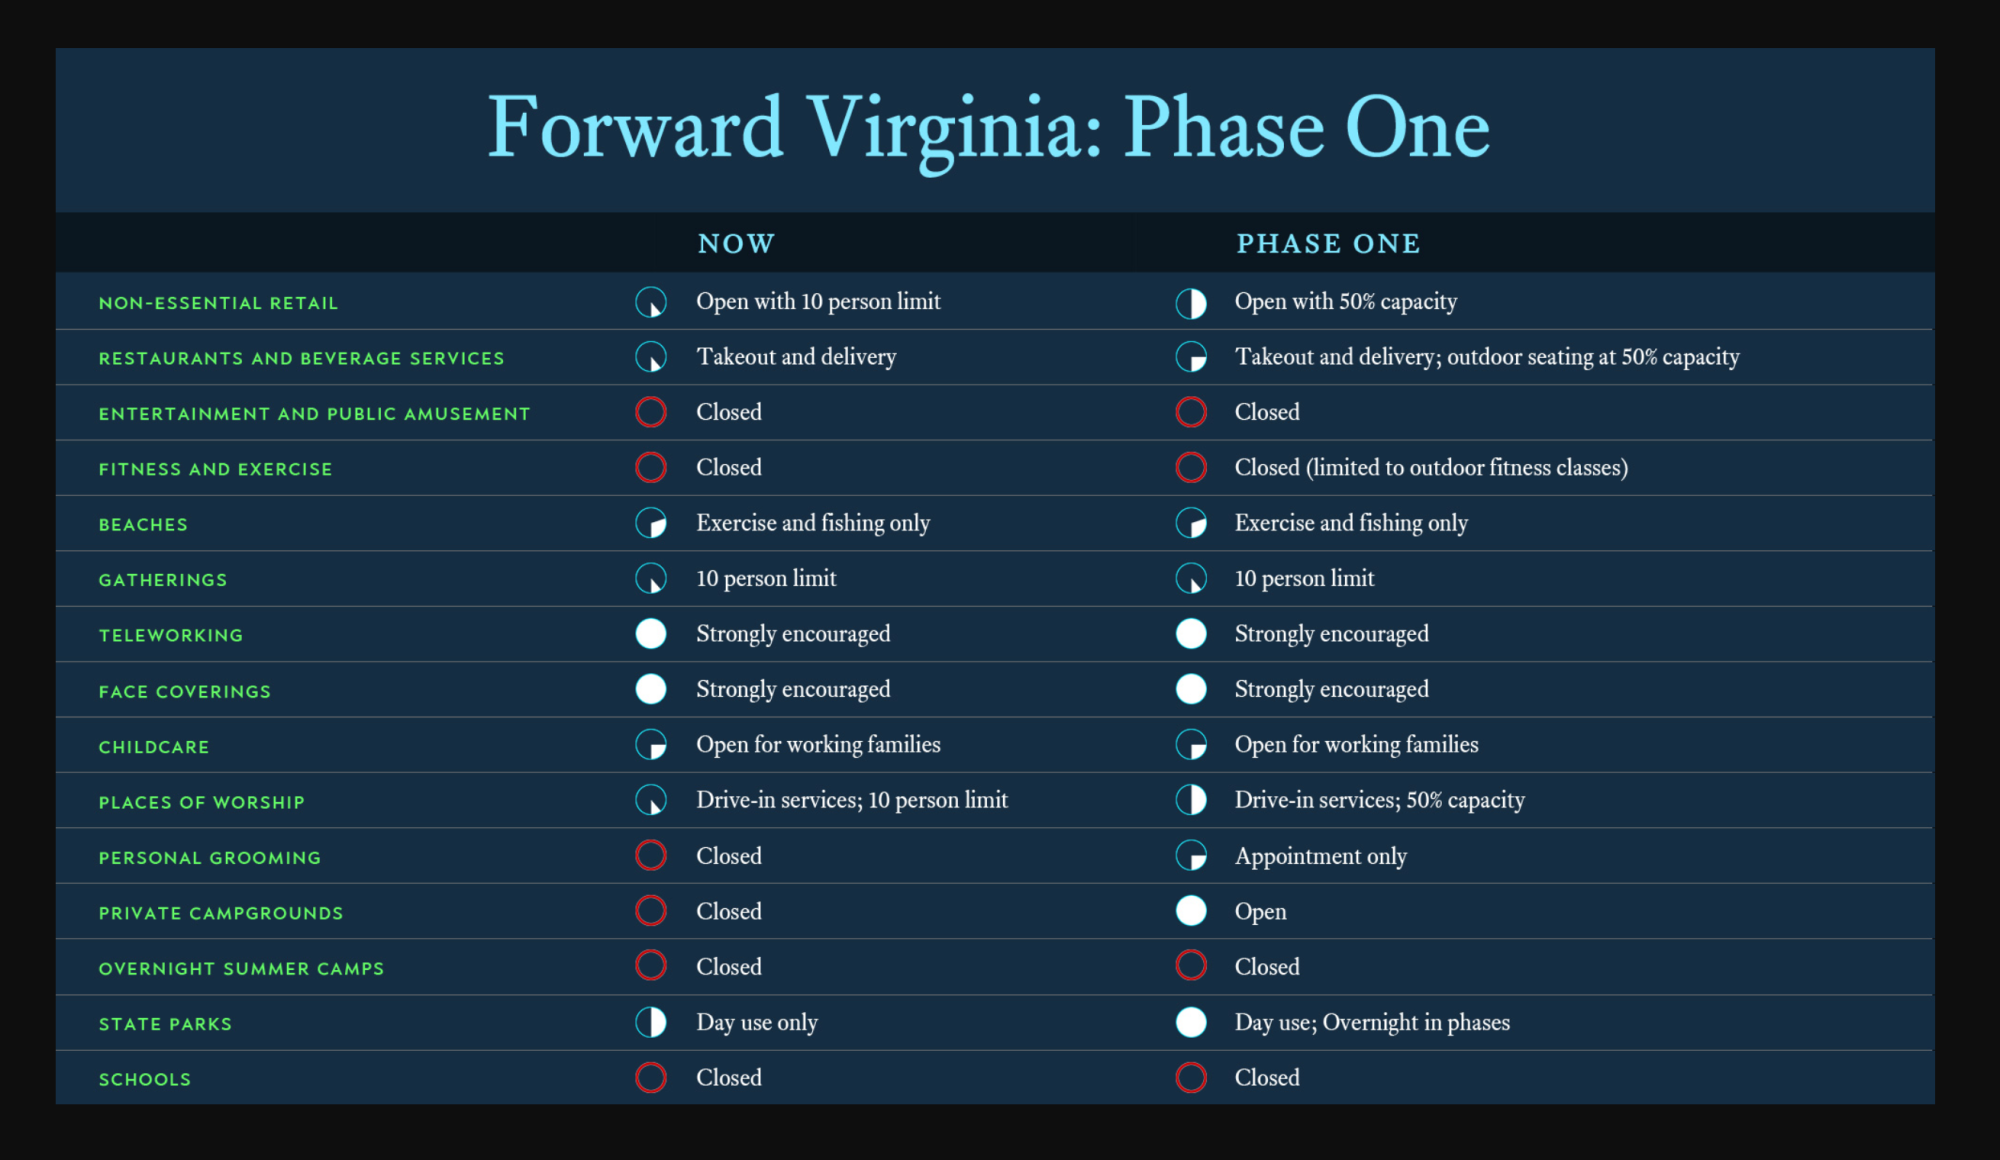 Forward Virginia Phase 1 Graphic